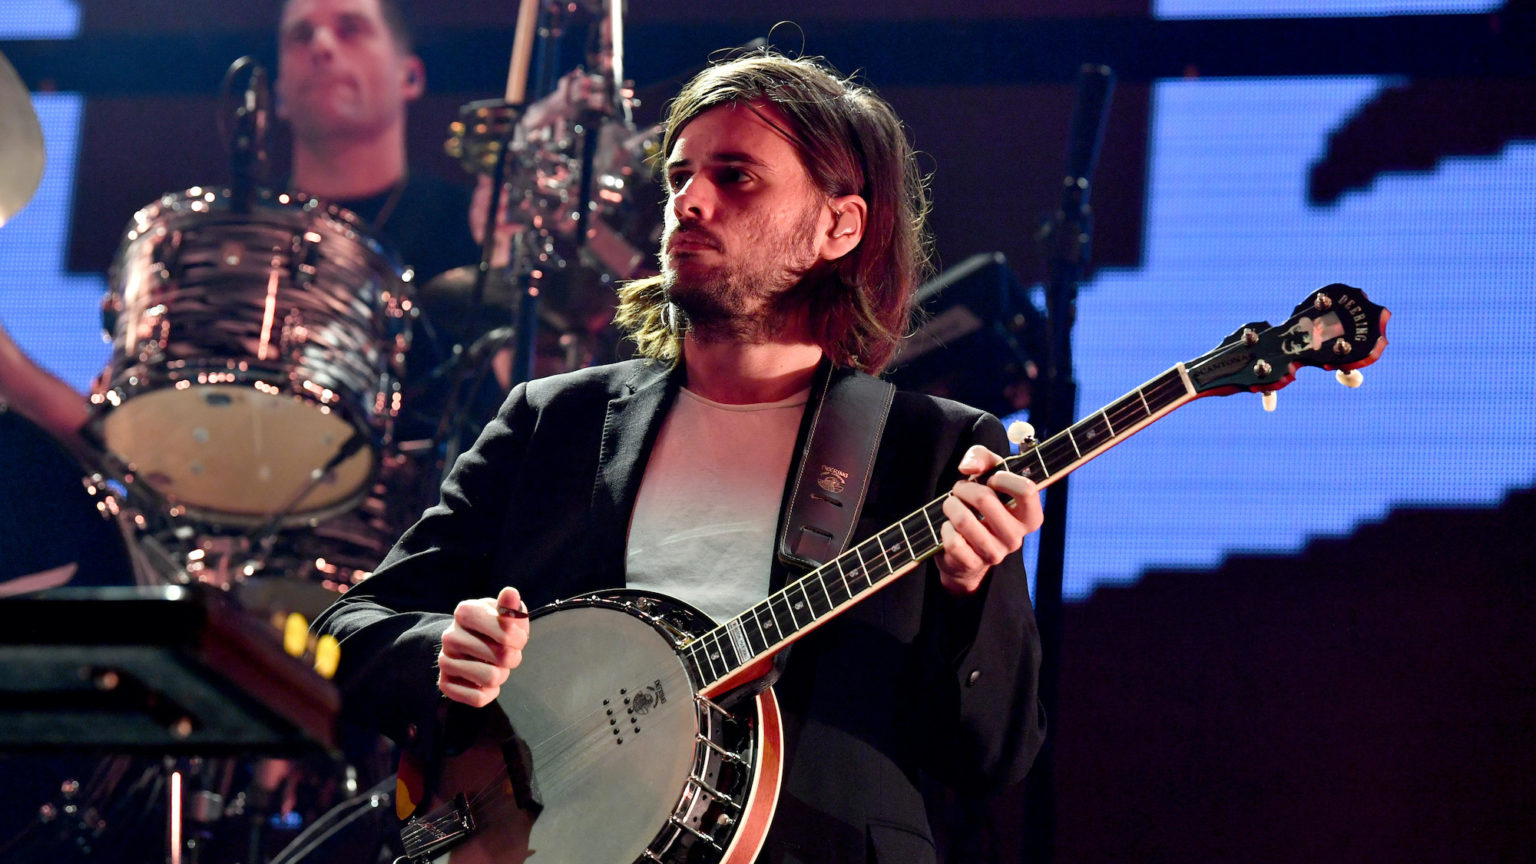 Leave that bloke from Mumford & Sons alone